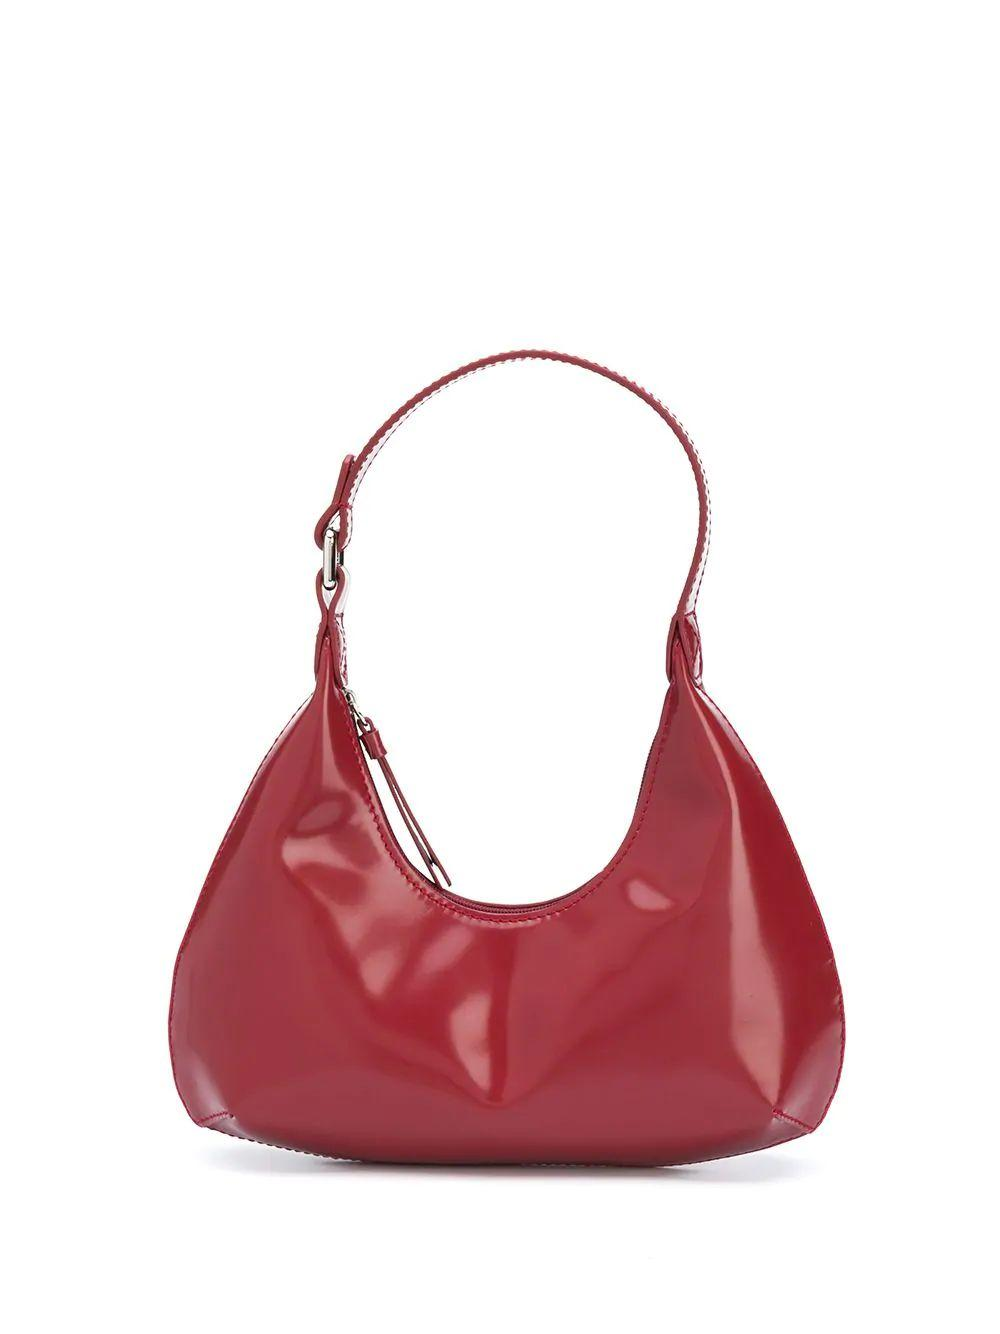 Baby Amber Semi Patent Shoulder Bag Item # 20PFBASBXWSMA